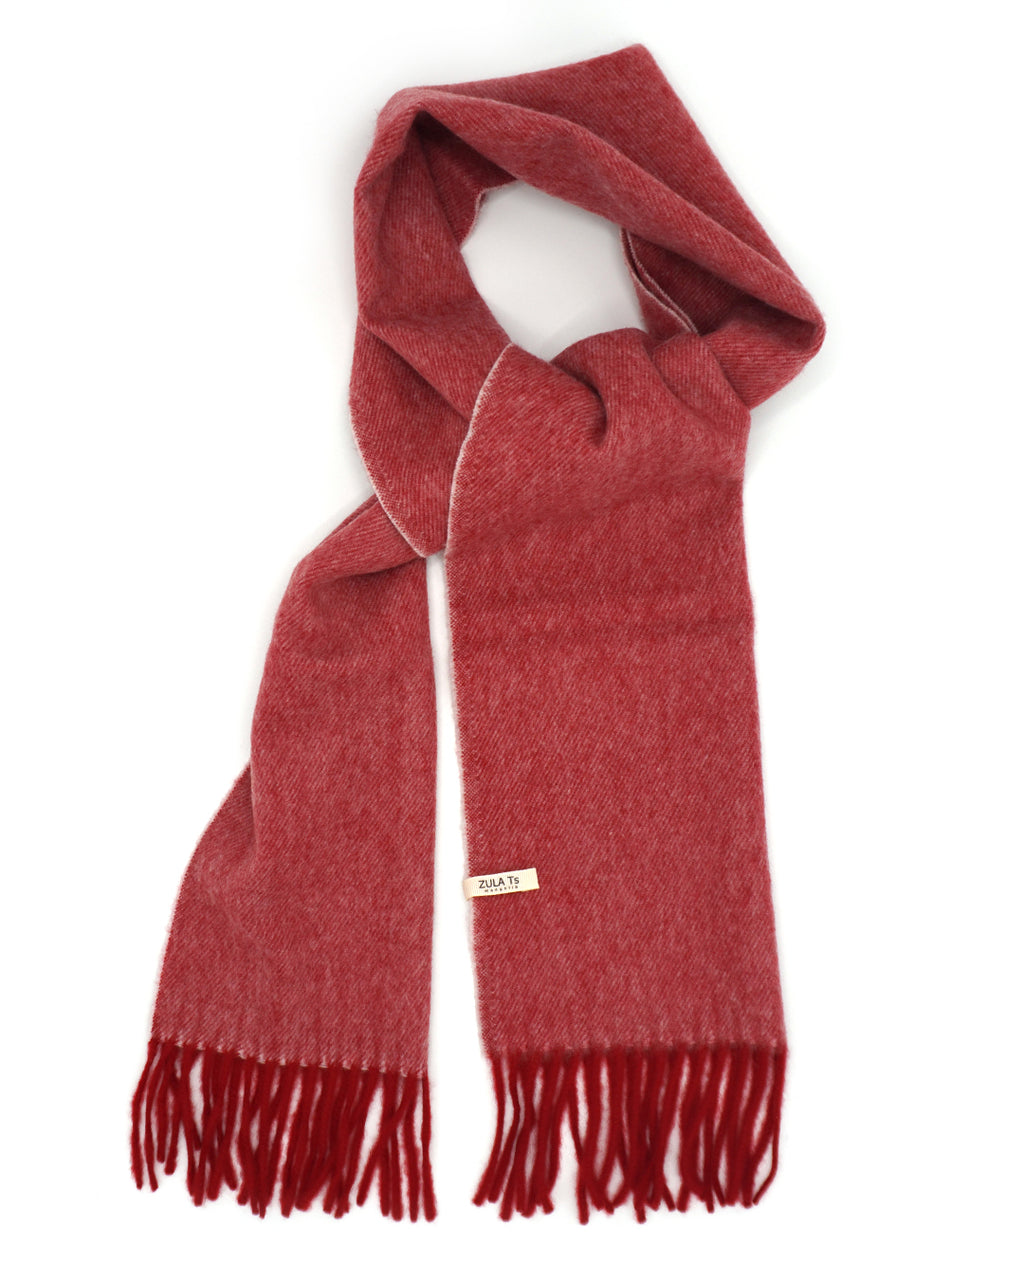 100% Woven Cashmere Scarf